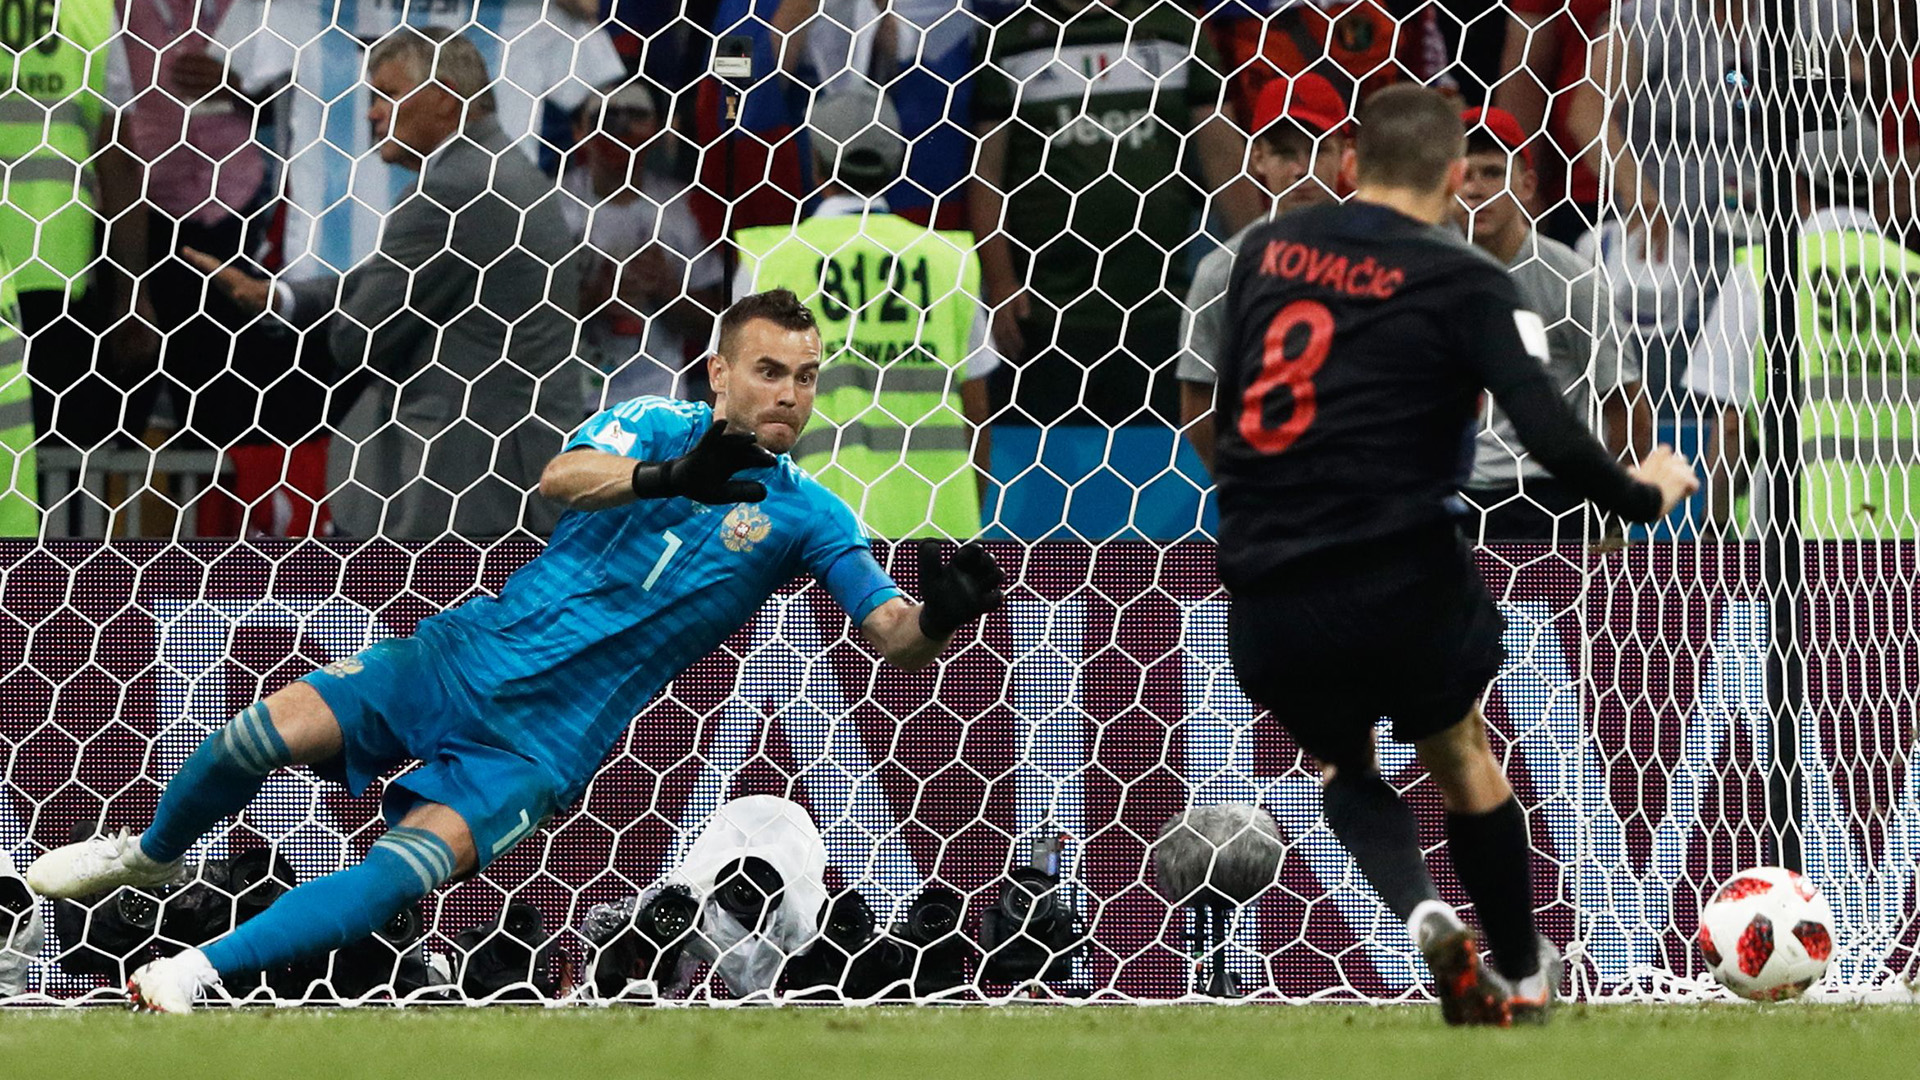 Exhausted and battered, Croatia reaches its 1st World Cup final